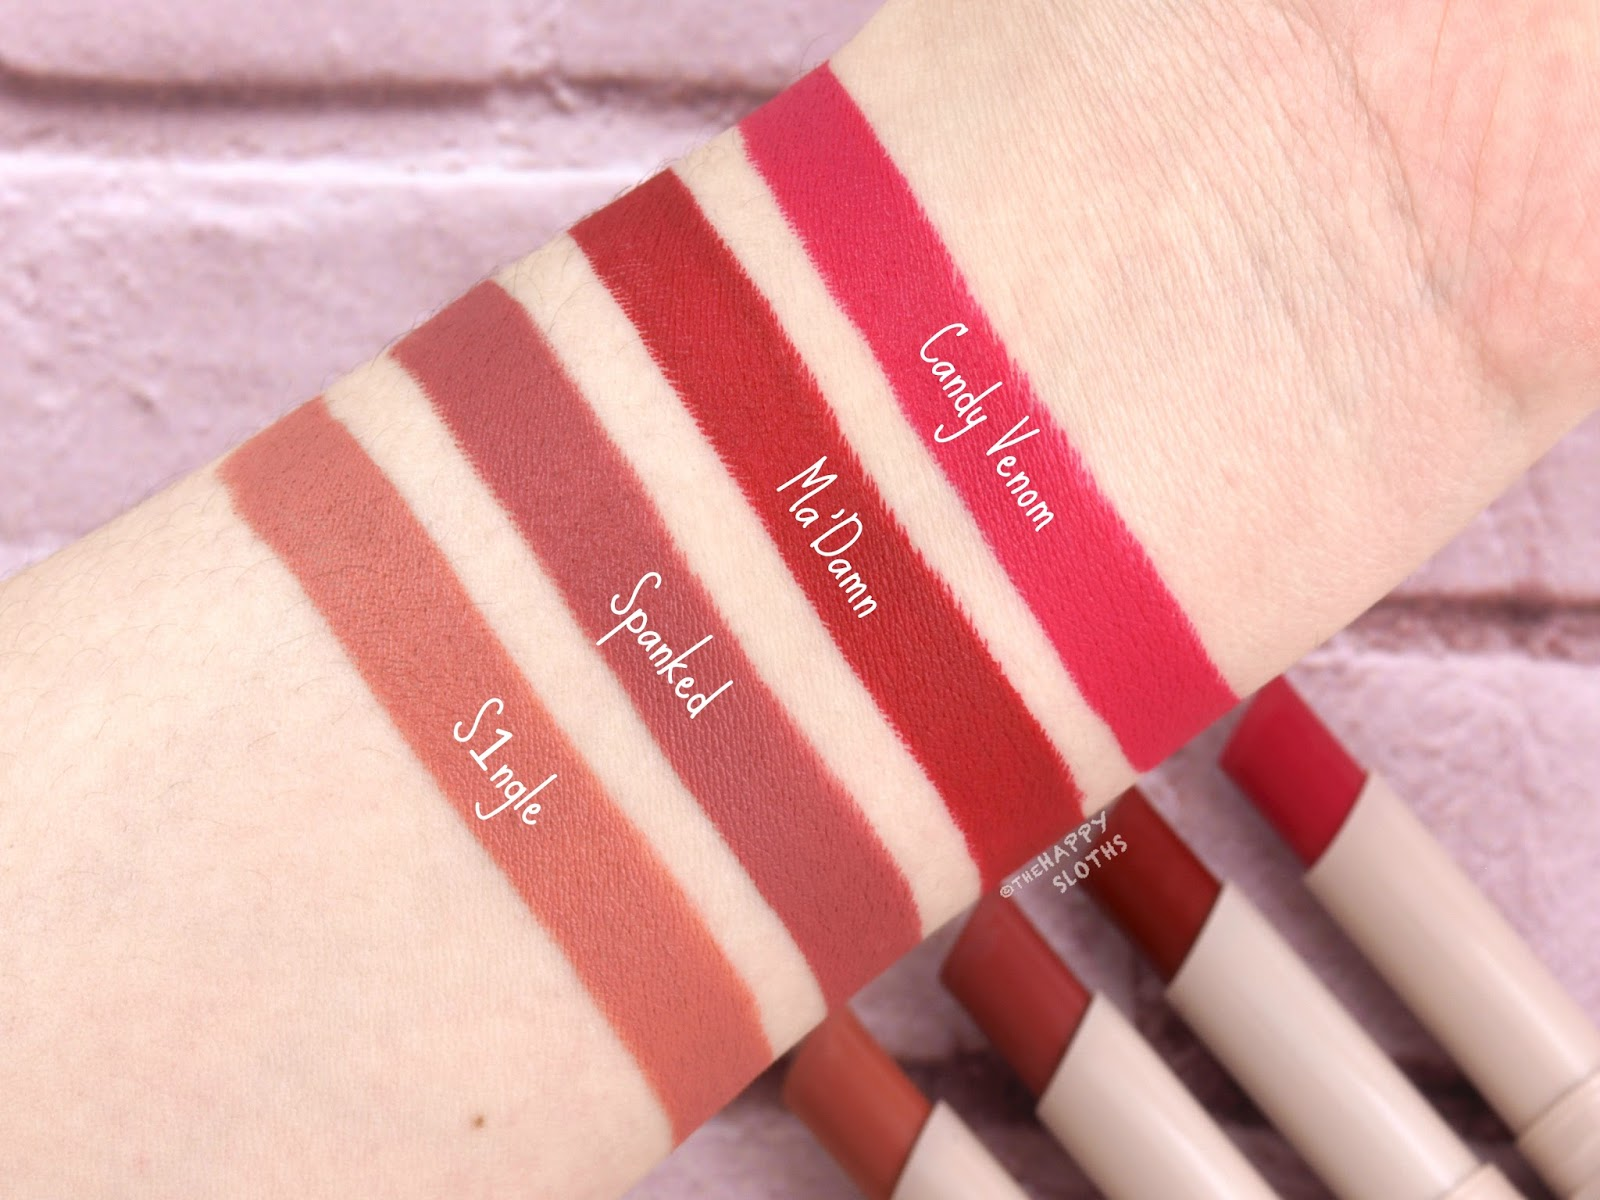 Fenty Beauty by Rihanna | Mattemoiselle Plush Matte Lipstick: Review and Swatches